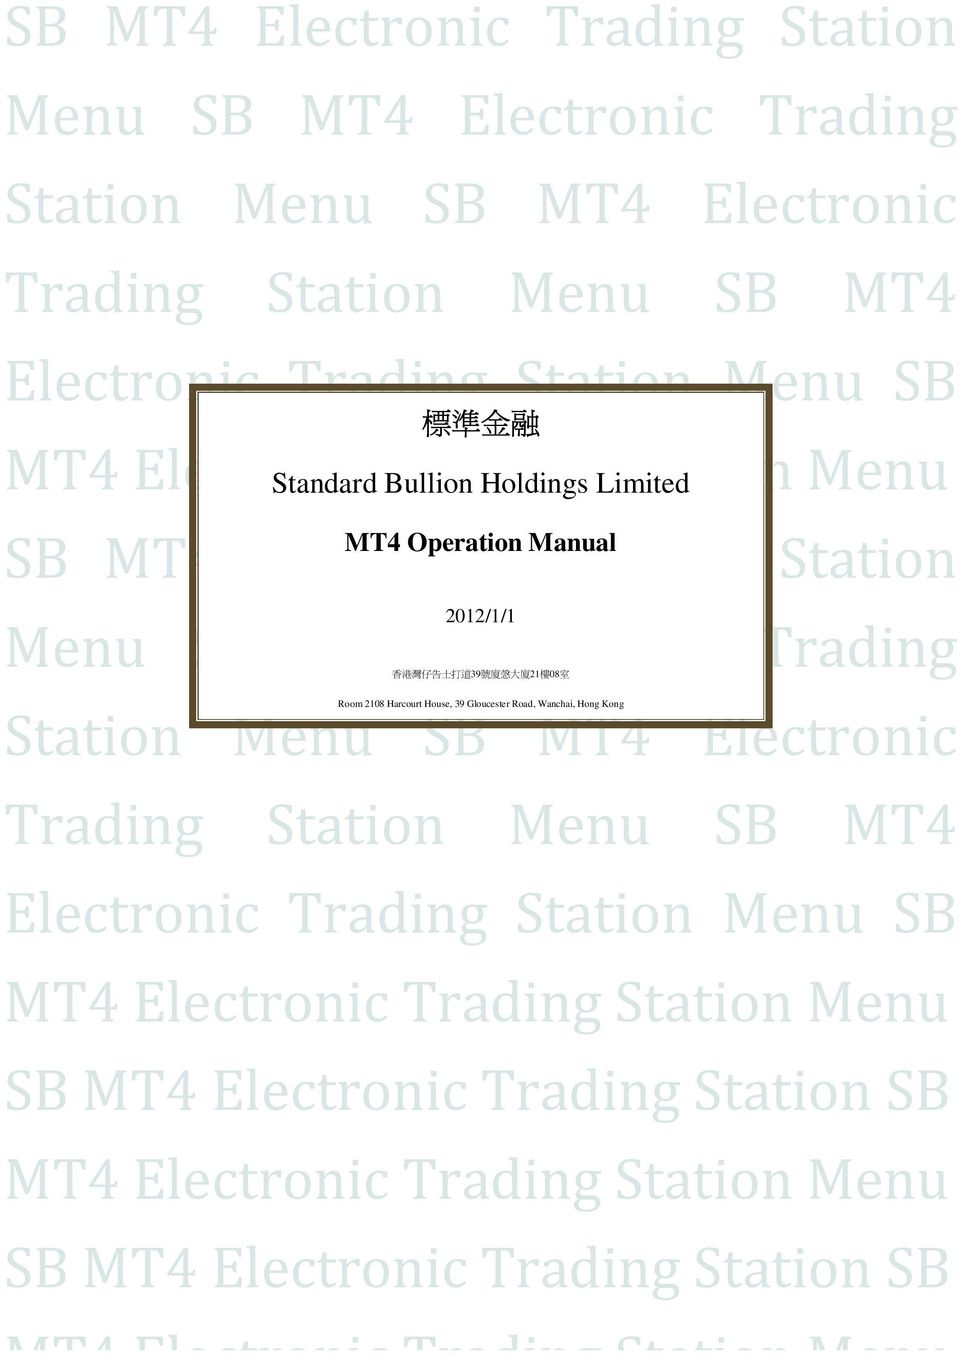 灣 仔 告 士 打 道 39 號 廈 愨 大 廈 21 樓 08 室 Room 2108 Harcourt House, 39 Gloucester Road, Wanchai, Hong Kong Station Menu SB MT4 Electronic Trading Station Menu SB MT4